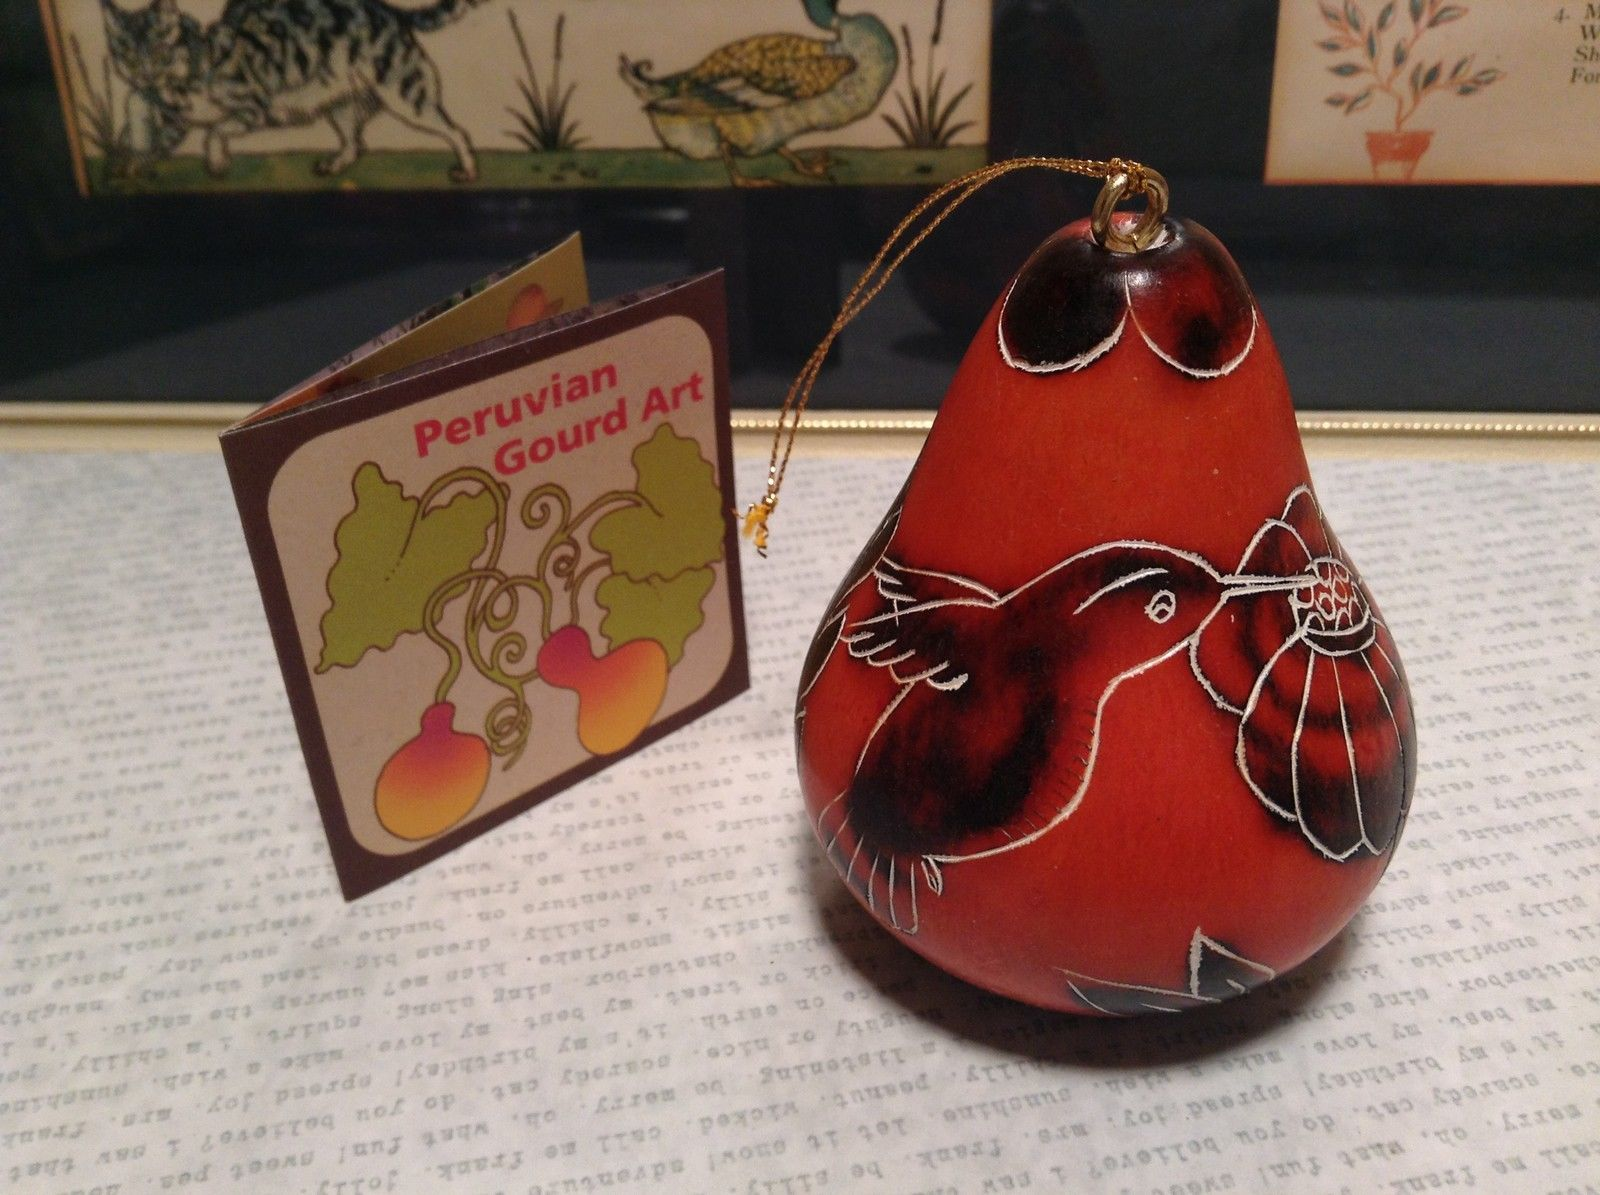 Hand Carved Art Ornament Peruvian Gourd Orange with Birds and Flowers Fair Trade